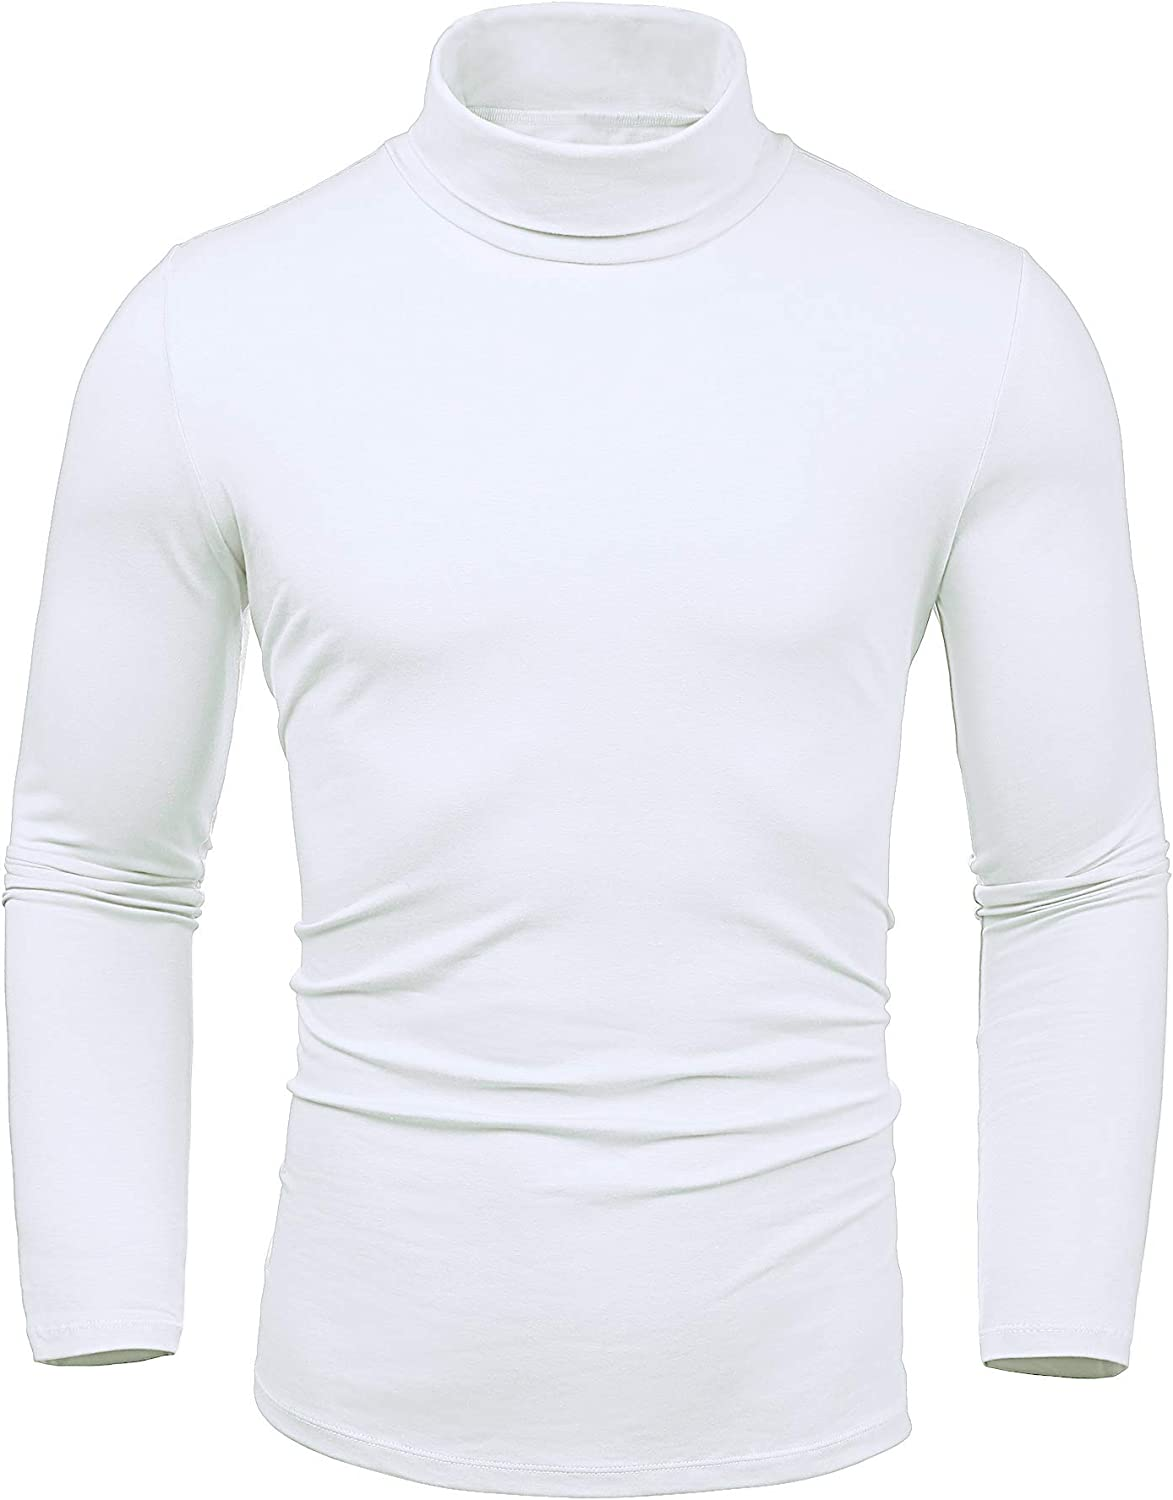 LecGee Men's Slim Fit Basic Thermal Turtleneck T Shirt Long Sleeve Casual Pullover Shirts